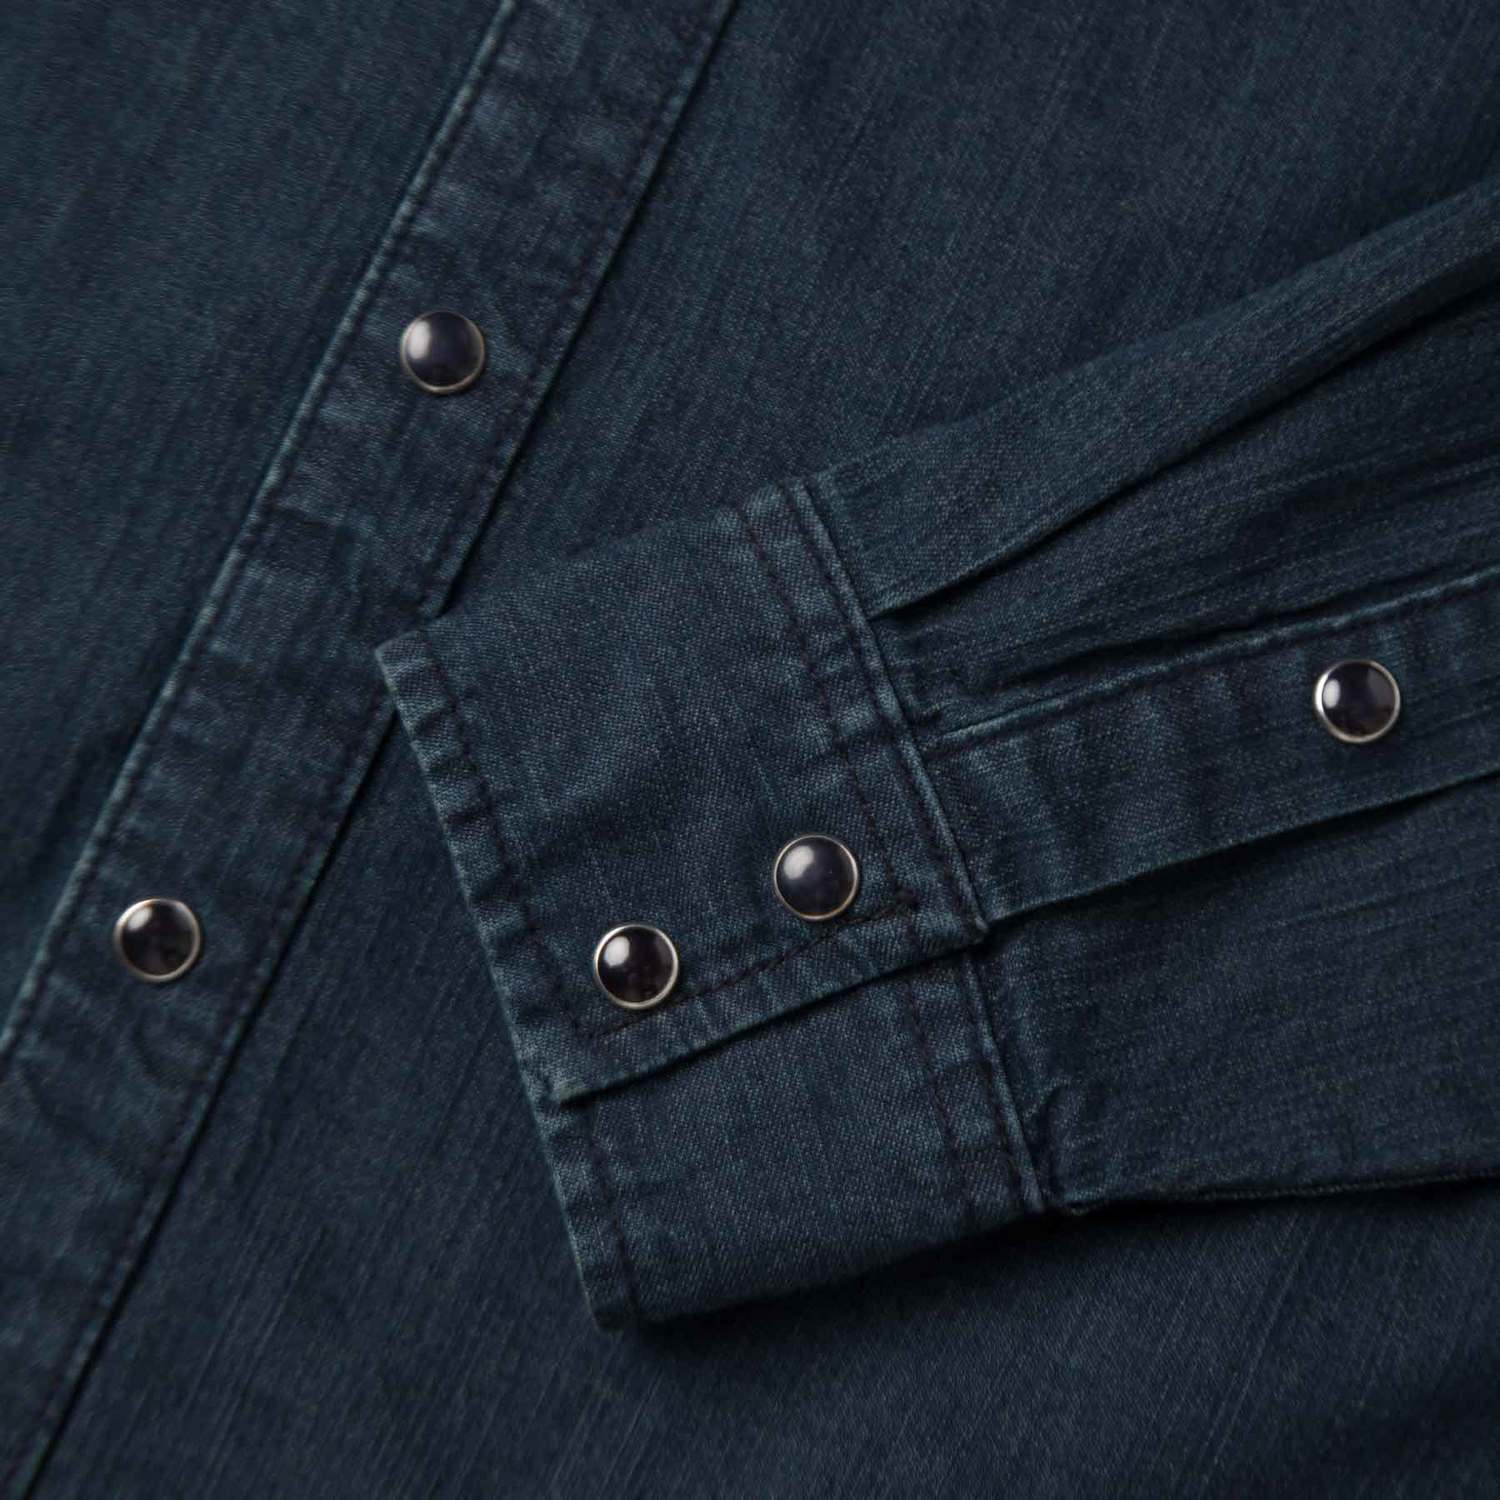 Mens snap button down denim shirt in midnight blue 75 dstld for Mens shirts with snaps instead of buttons